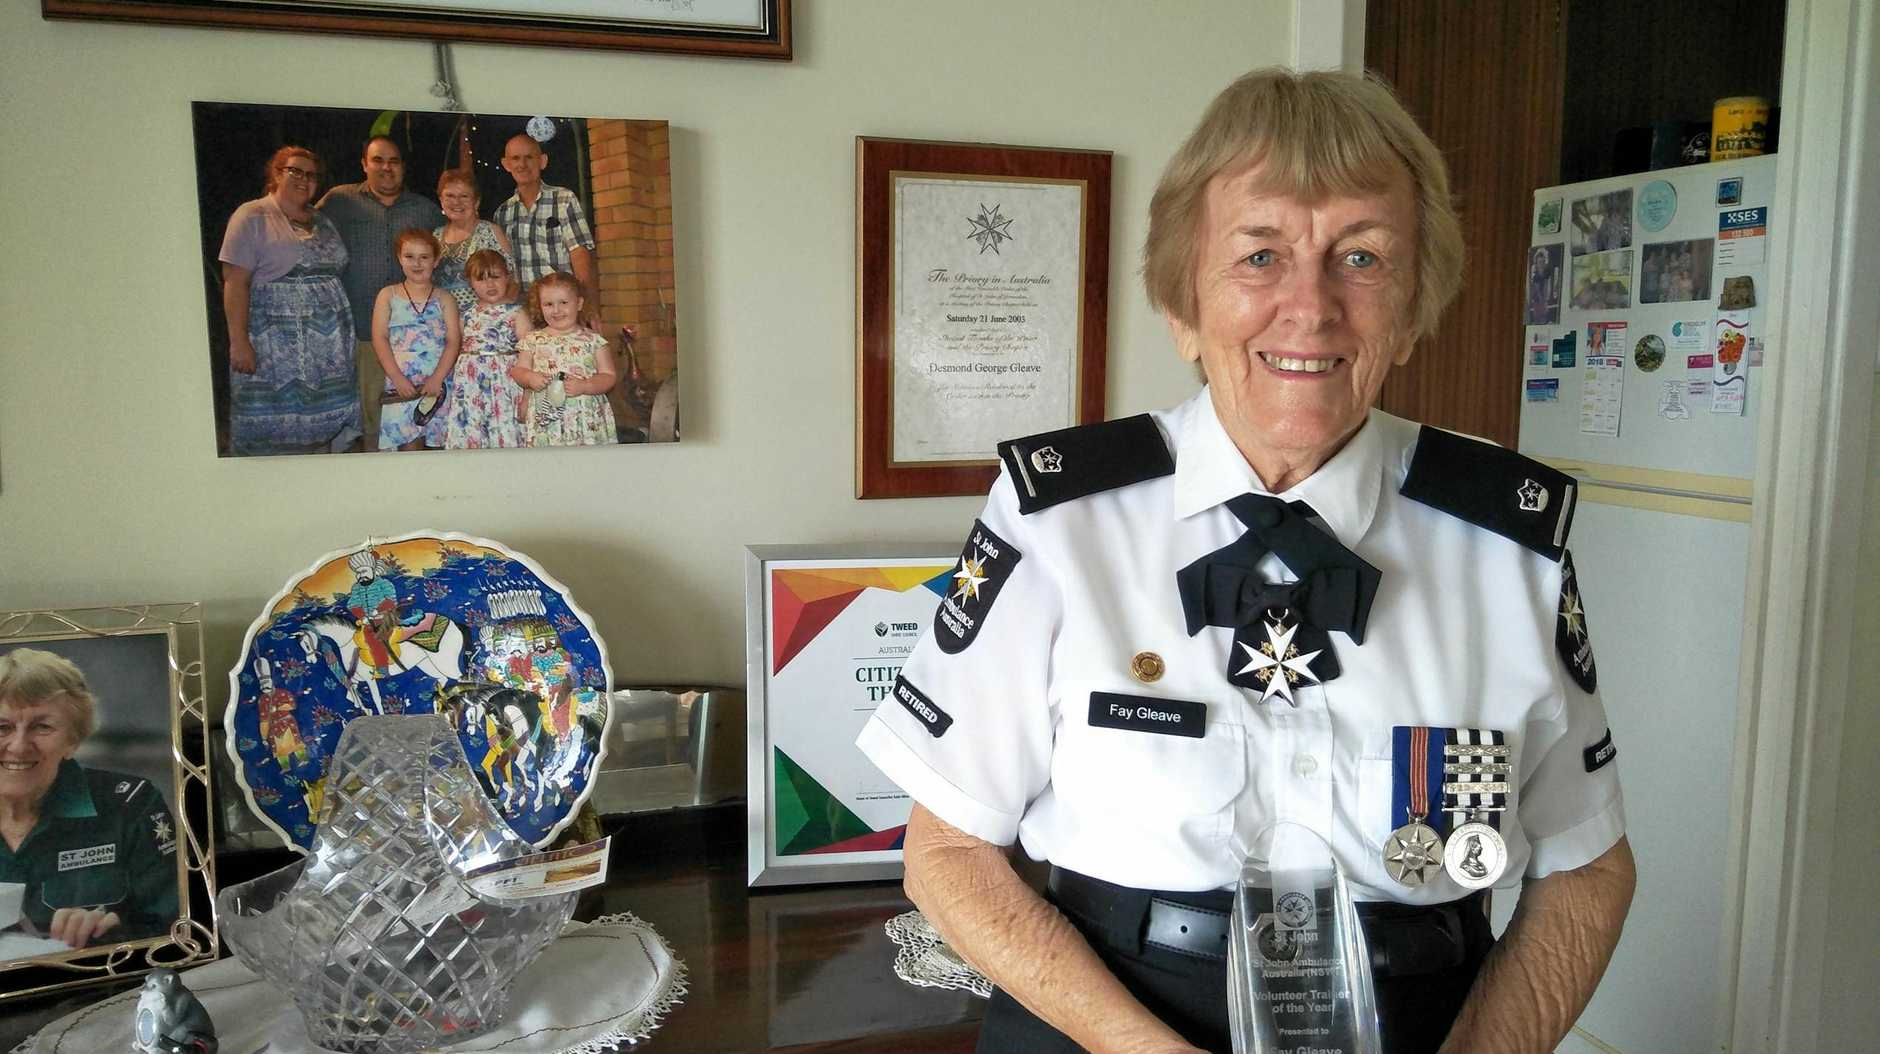 LIFETIME VOLUNTEER: Fay Gleave St John's Ambulance's trainer of the year.